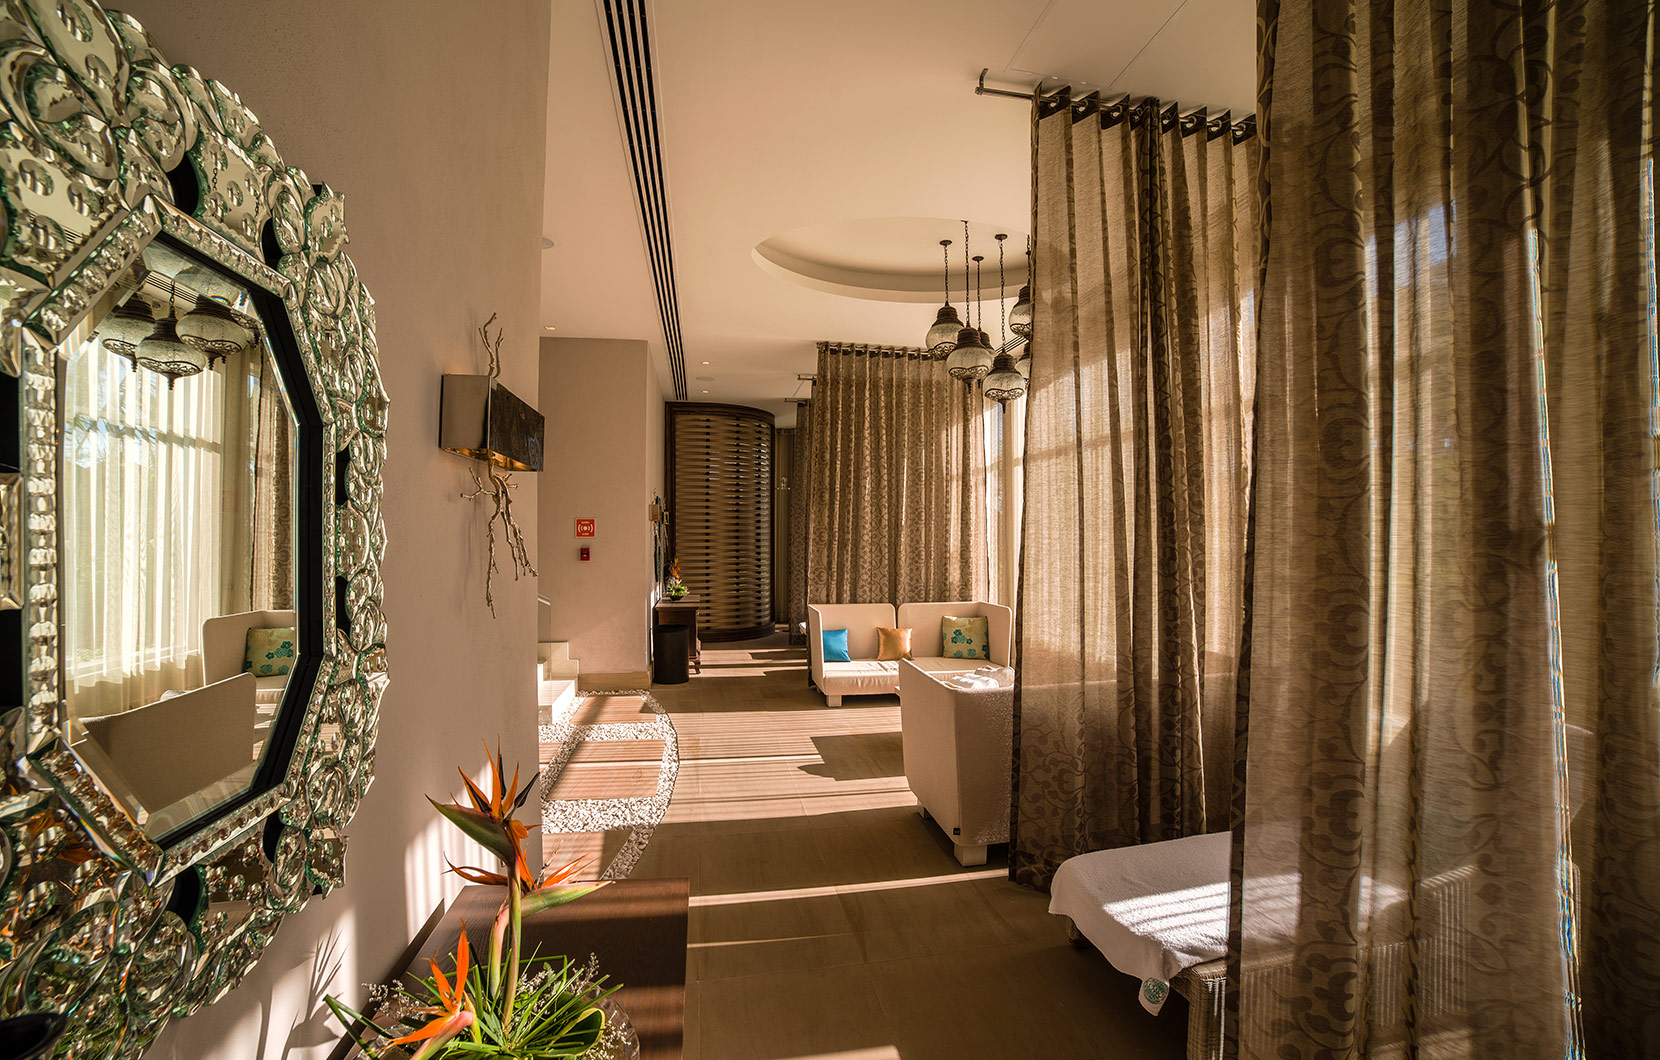 Spatium Nuevo Vallarta is designed as a sanctuary of peace and relaxation.